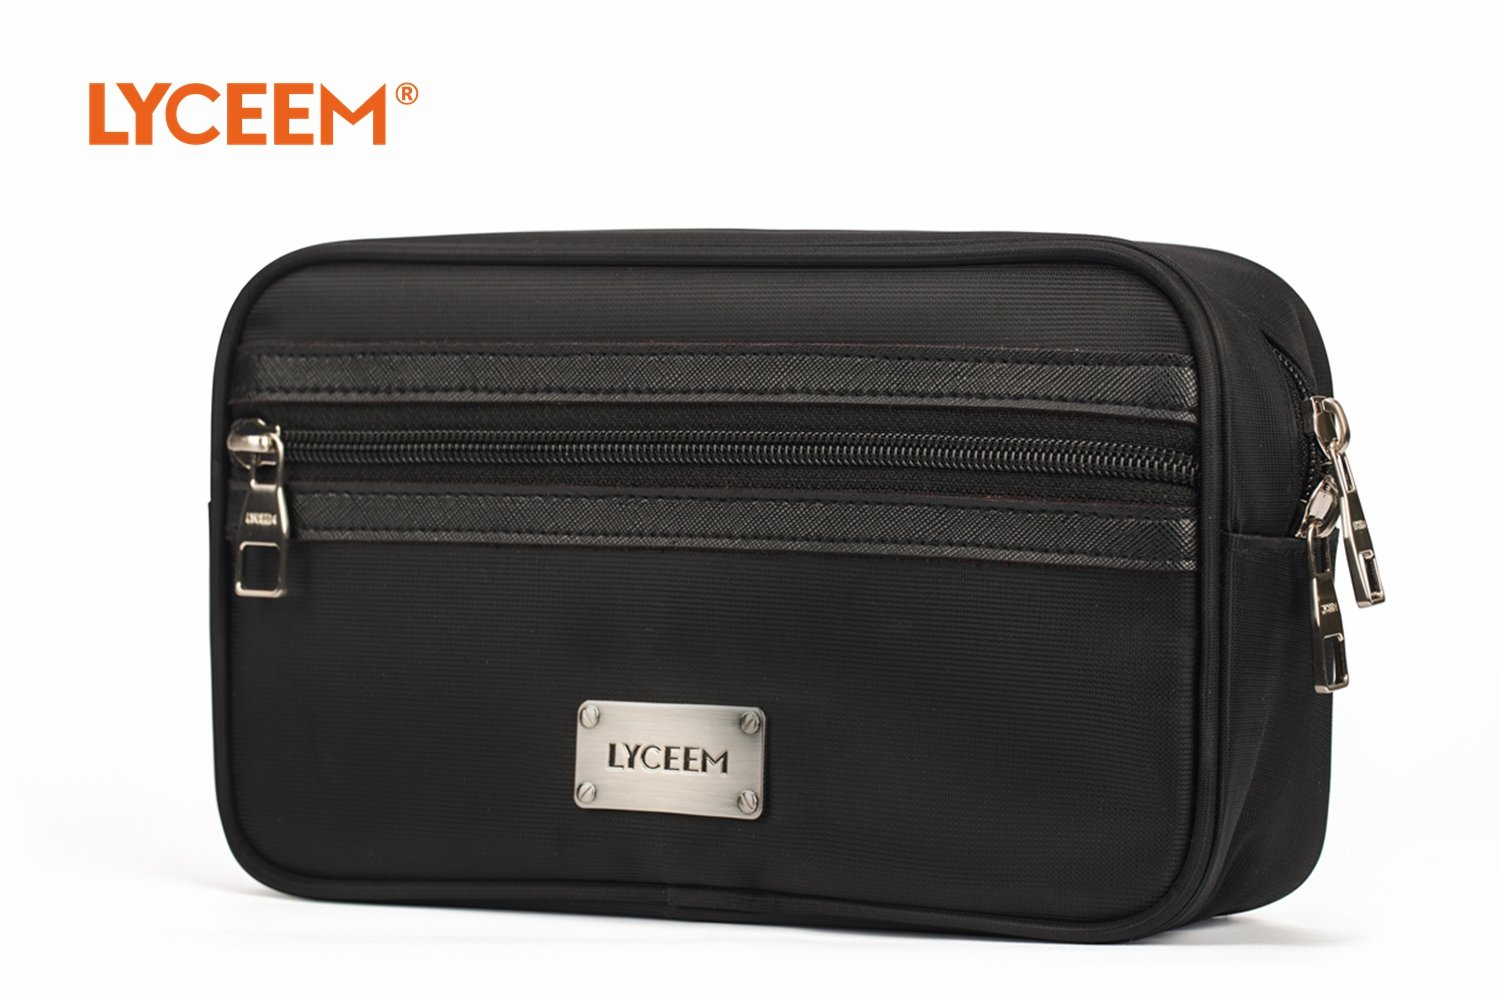 LYCEEM Universal Cord Organizer Travel for Small Electronics and Accessories for Men Business Travel